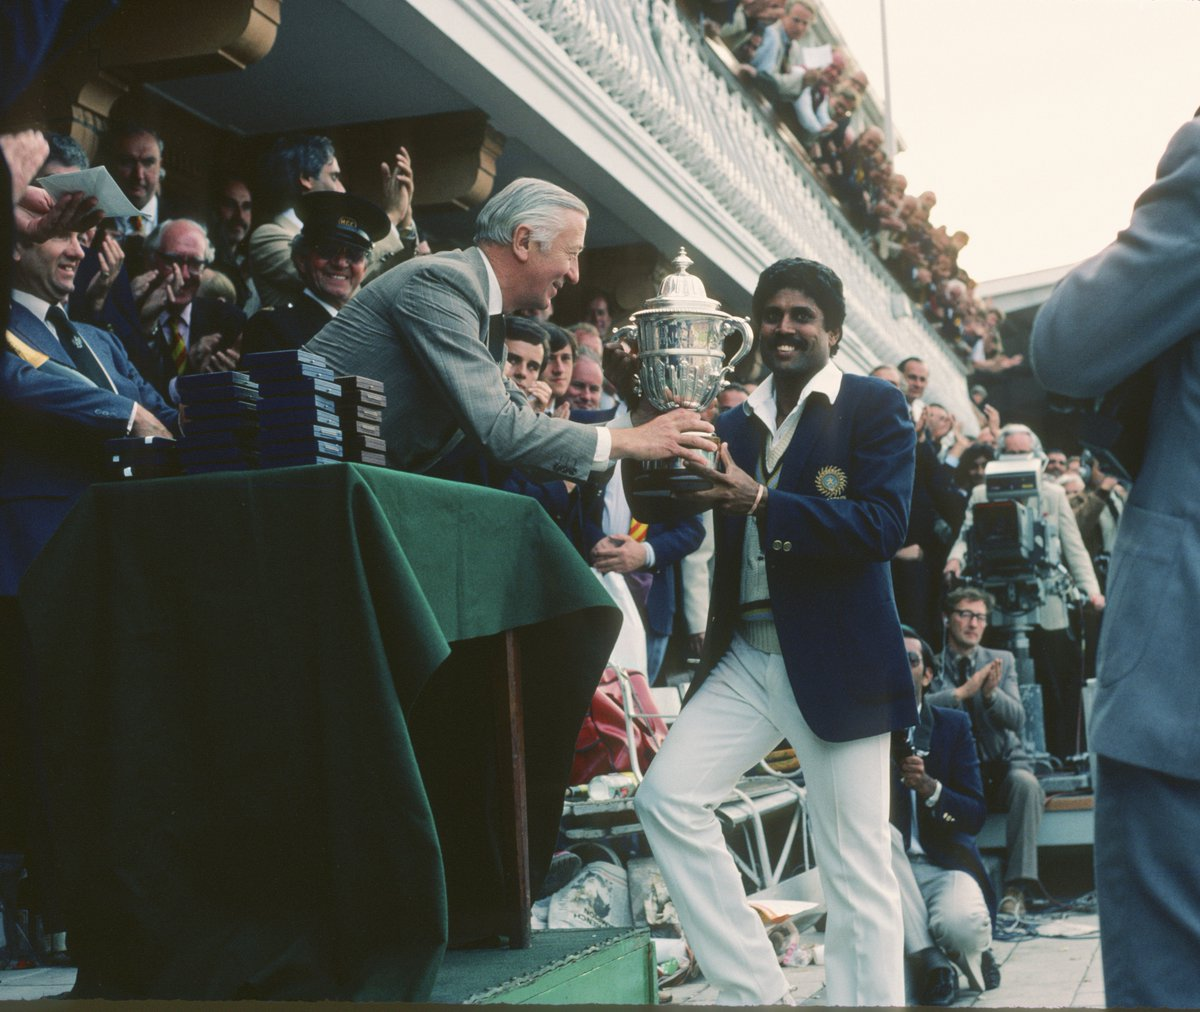 Kapil Dev lifting the World cup trophy in 1983 (Photo/ BCCI Twitter)